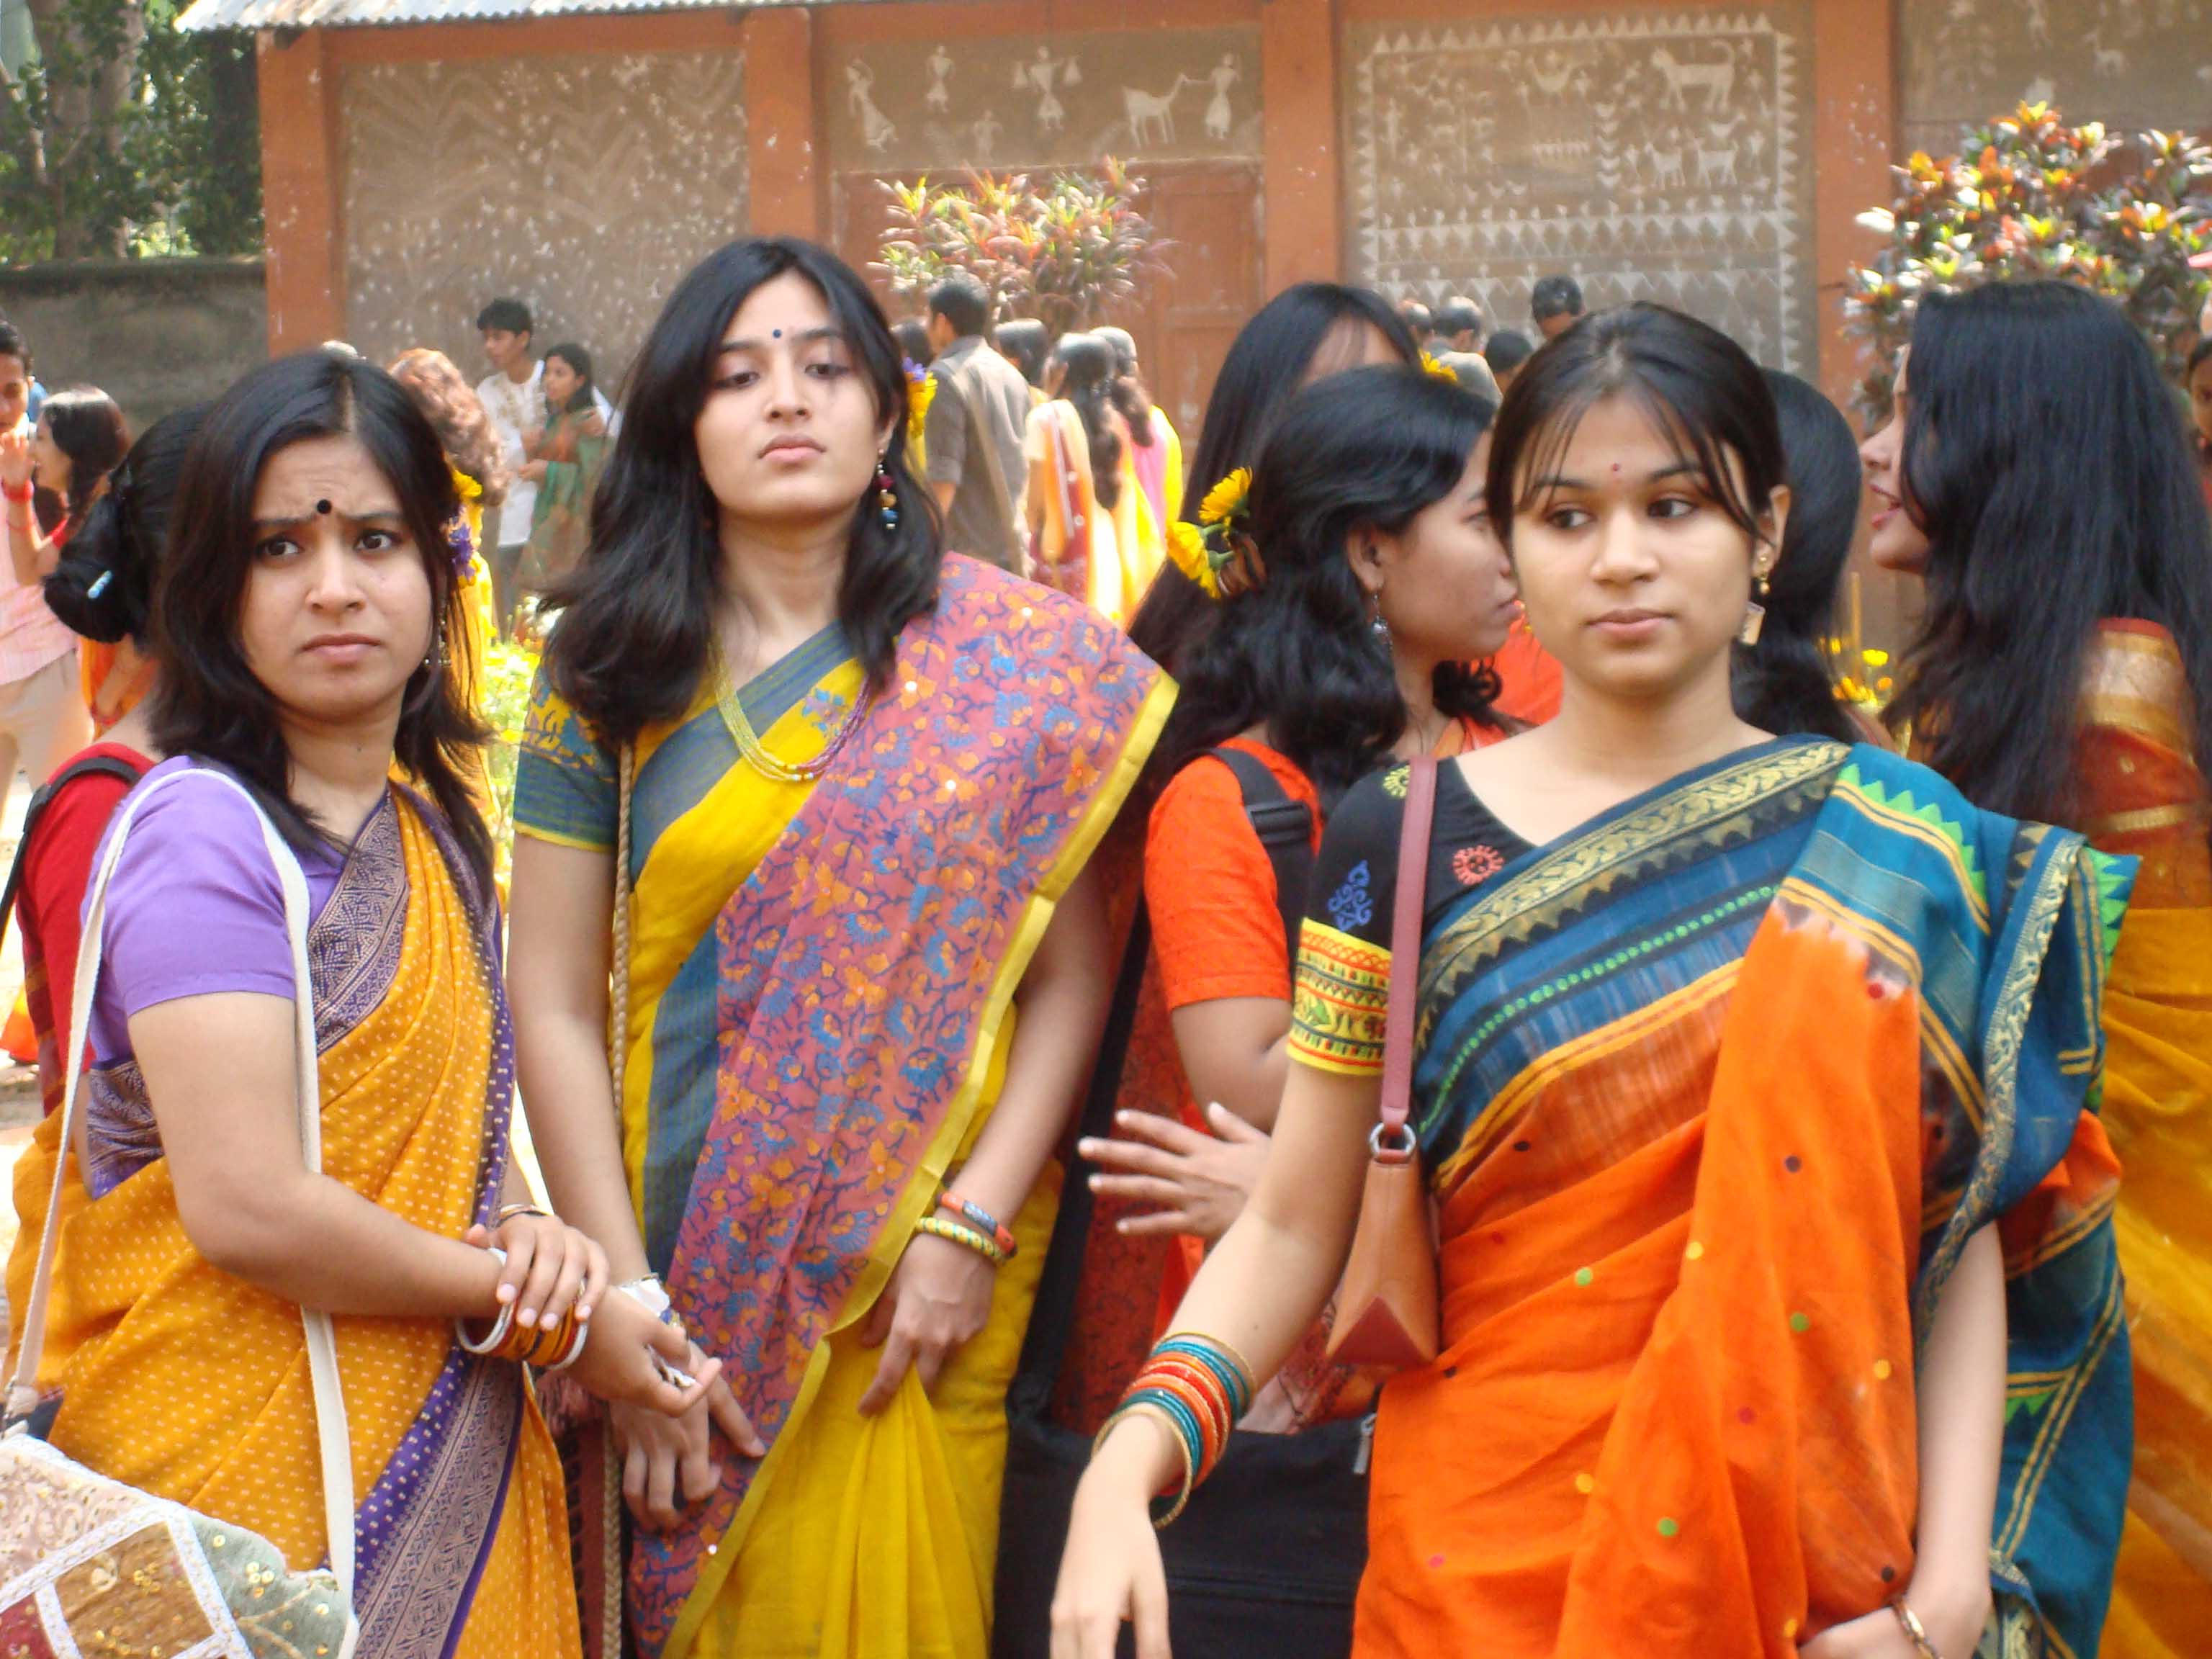 Girls in Sharee, Females, Girls, Group, Indian, HQ Photo